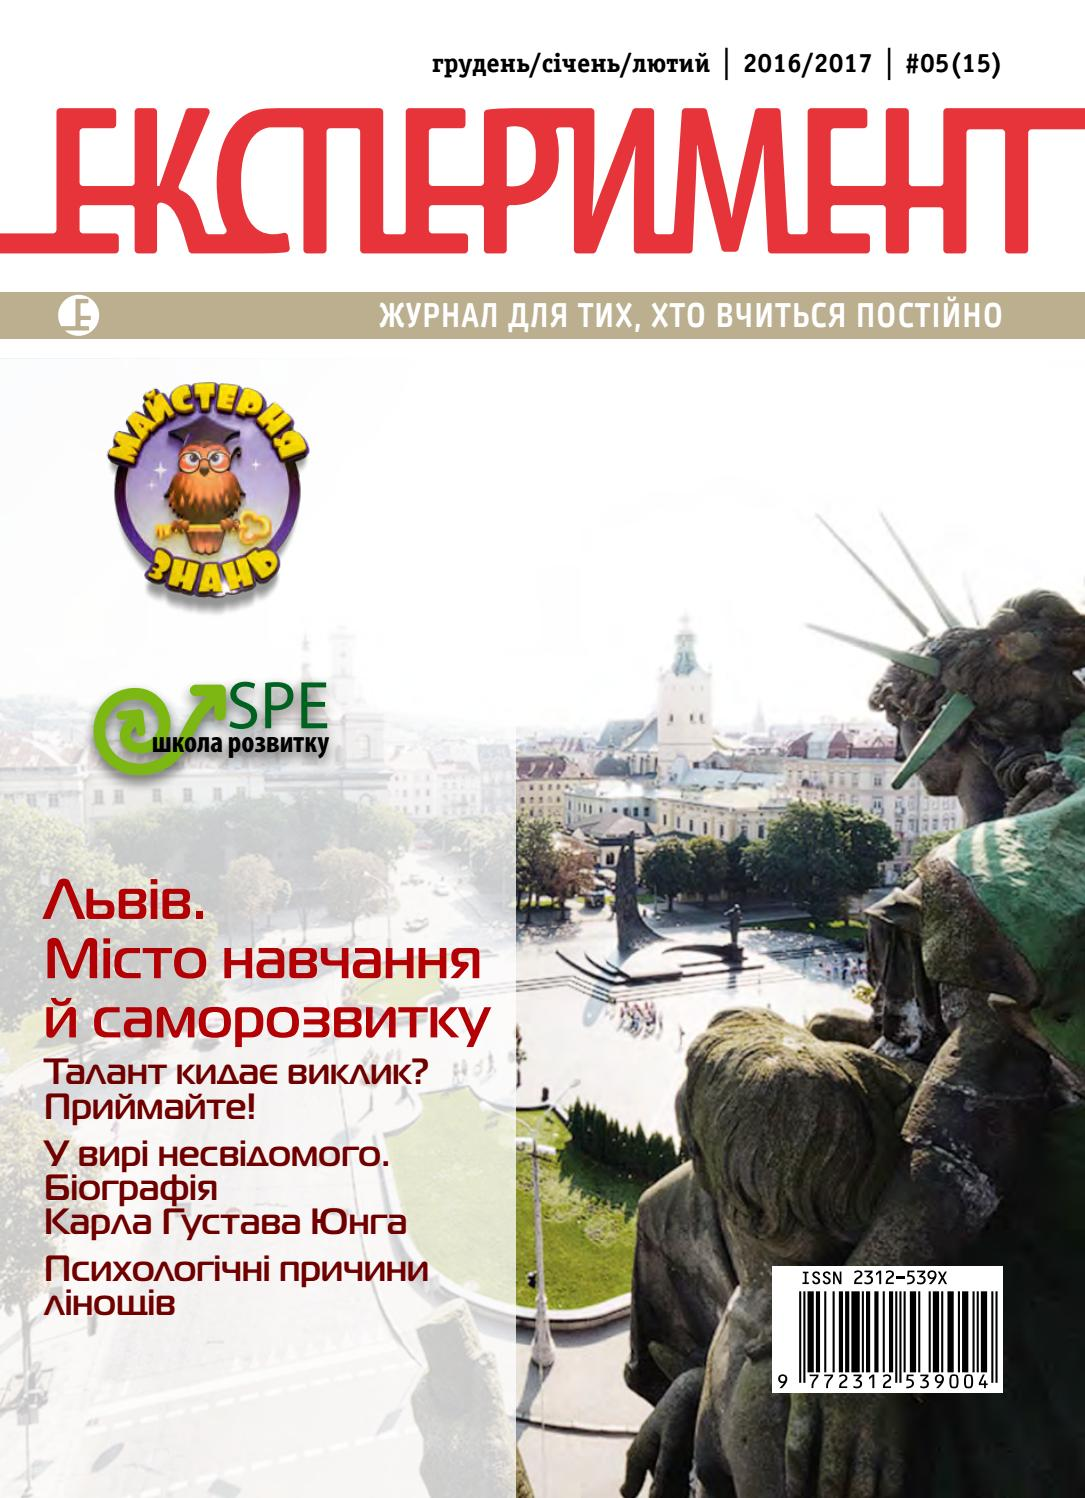 Експеримент №15 by Zhurnal Experyment - issuu e87028268d62c